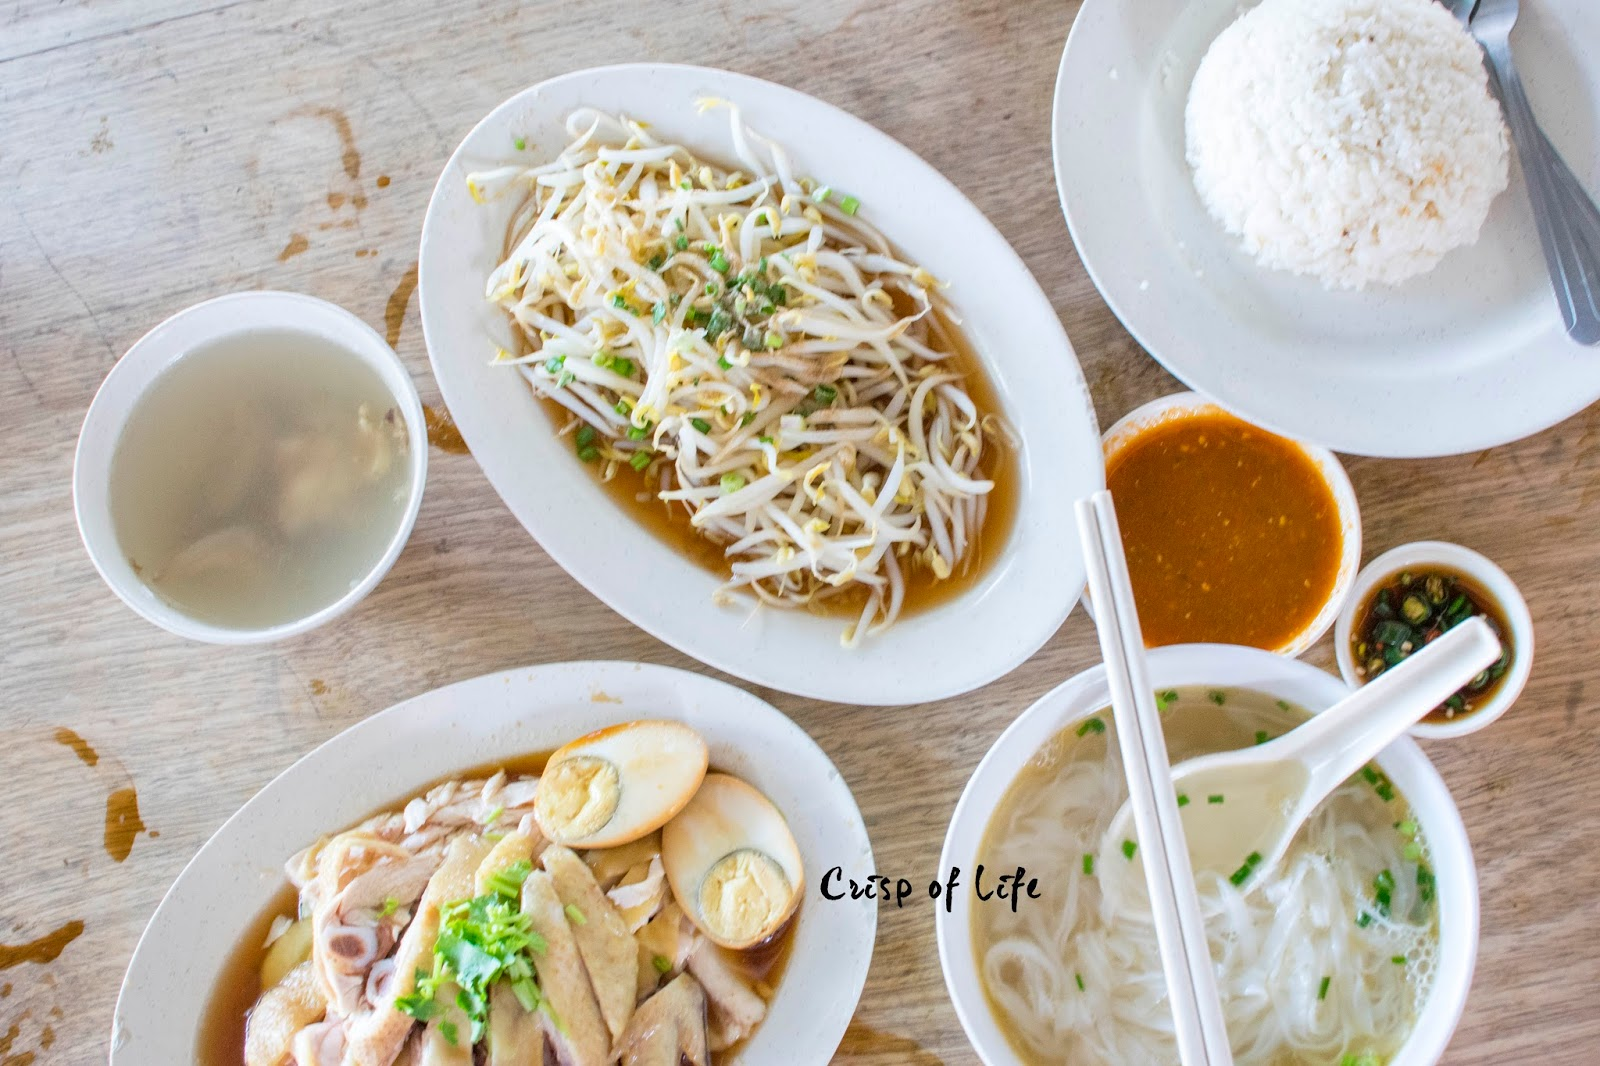 Boon Kee Ipoh's Bean Sprout Chicken Rice with Kopi Kao 文记怡保芽菜鸡 @ Relau, Penang